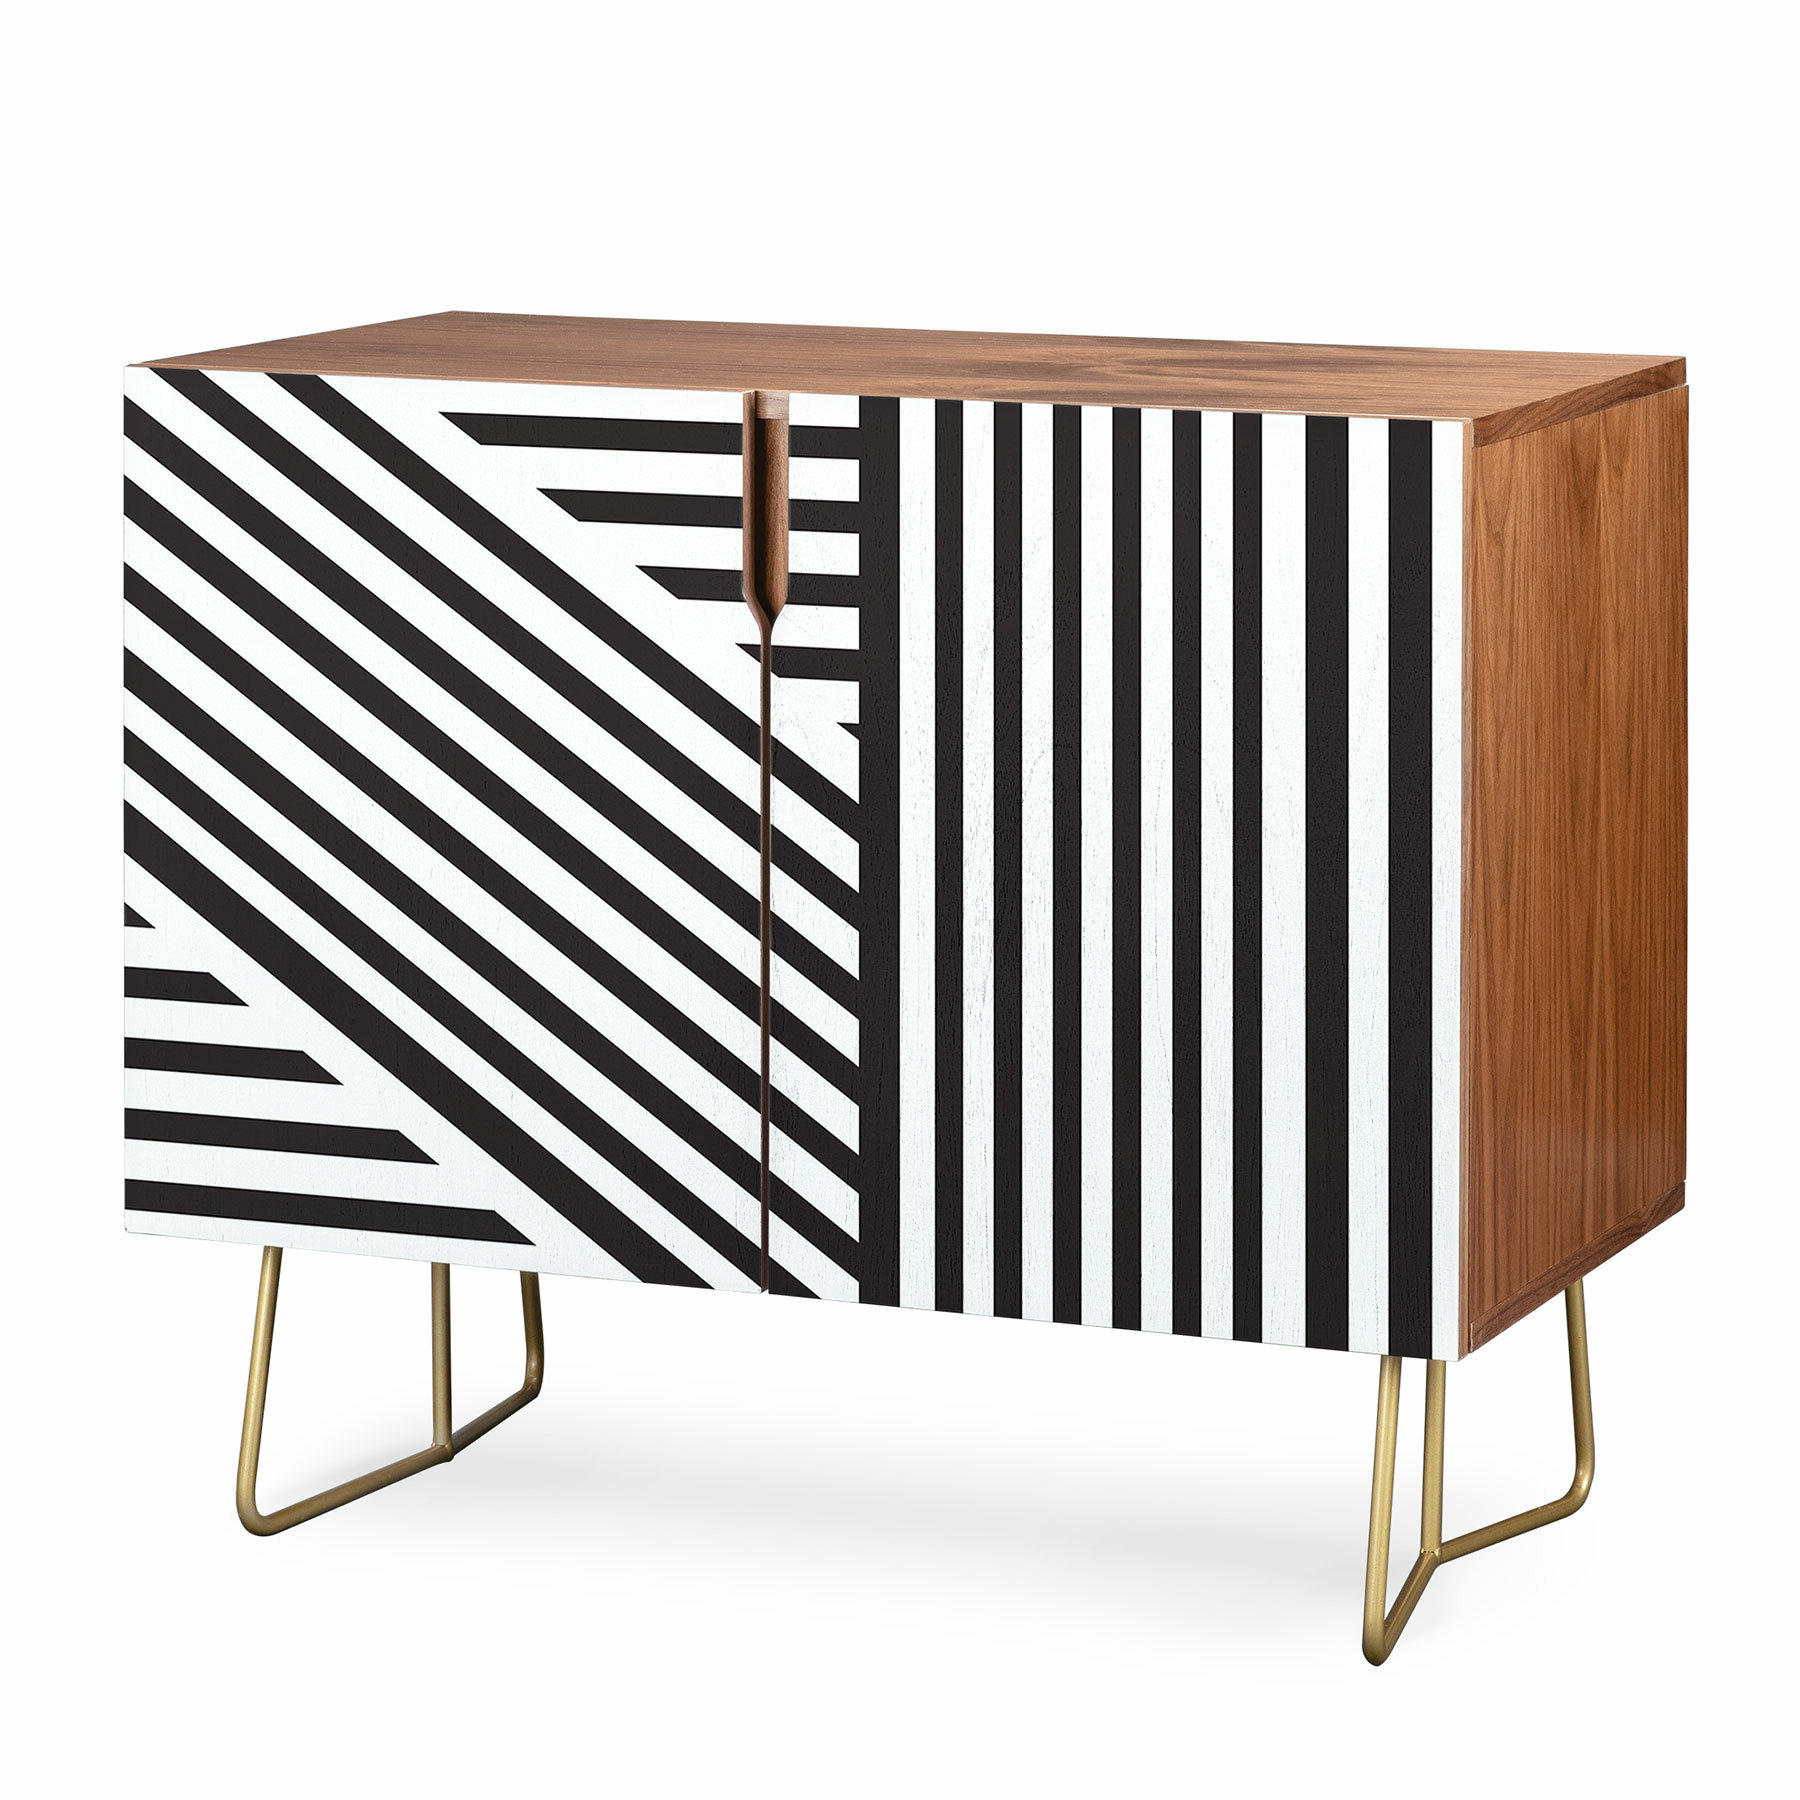 Vy La Everything Nice Credenza Throughout Multi Stripe Credenzas (Gallery 9 of 20)